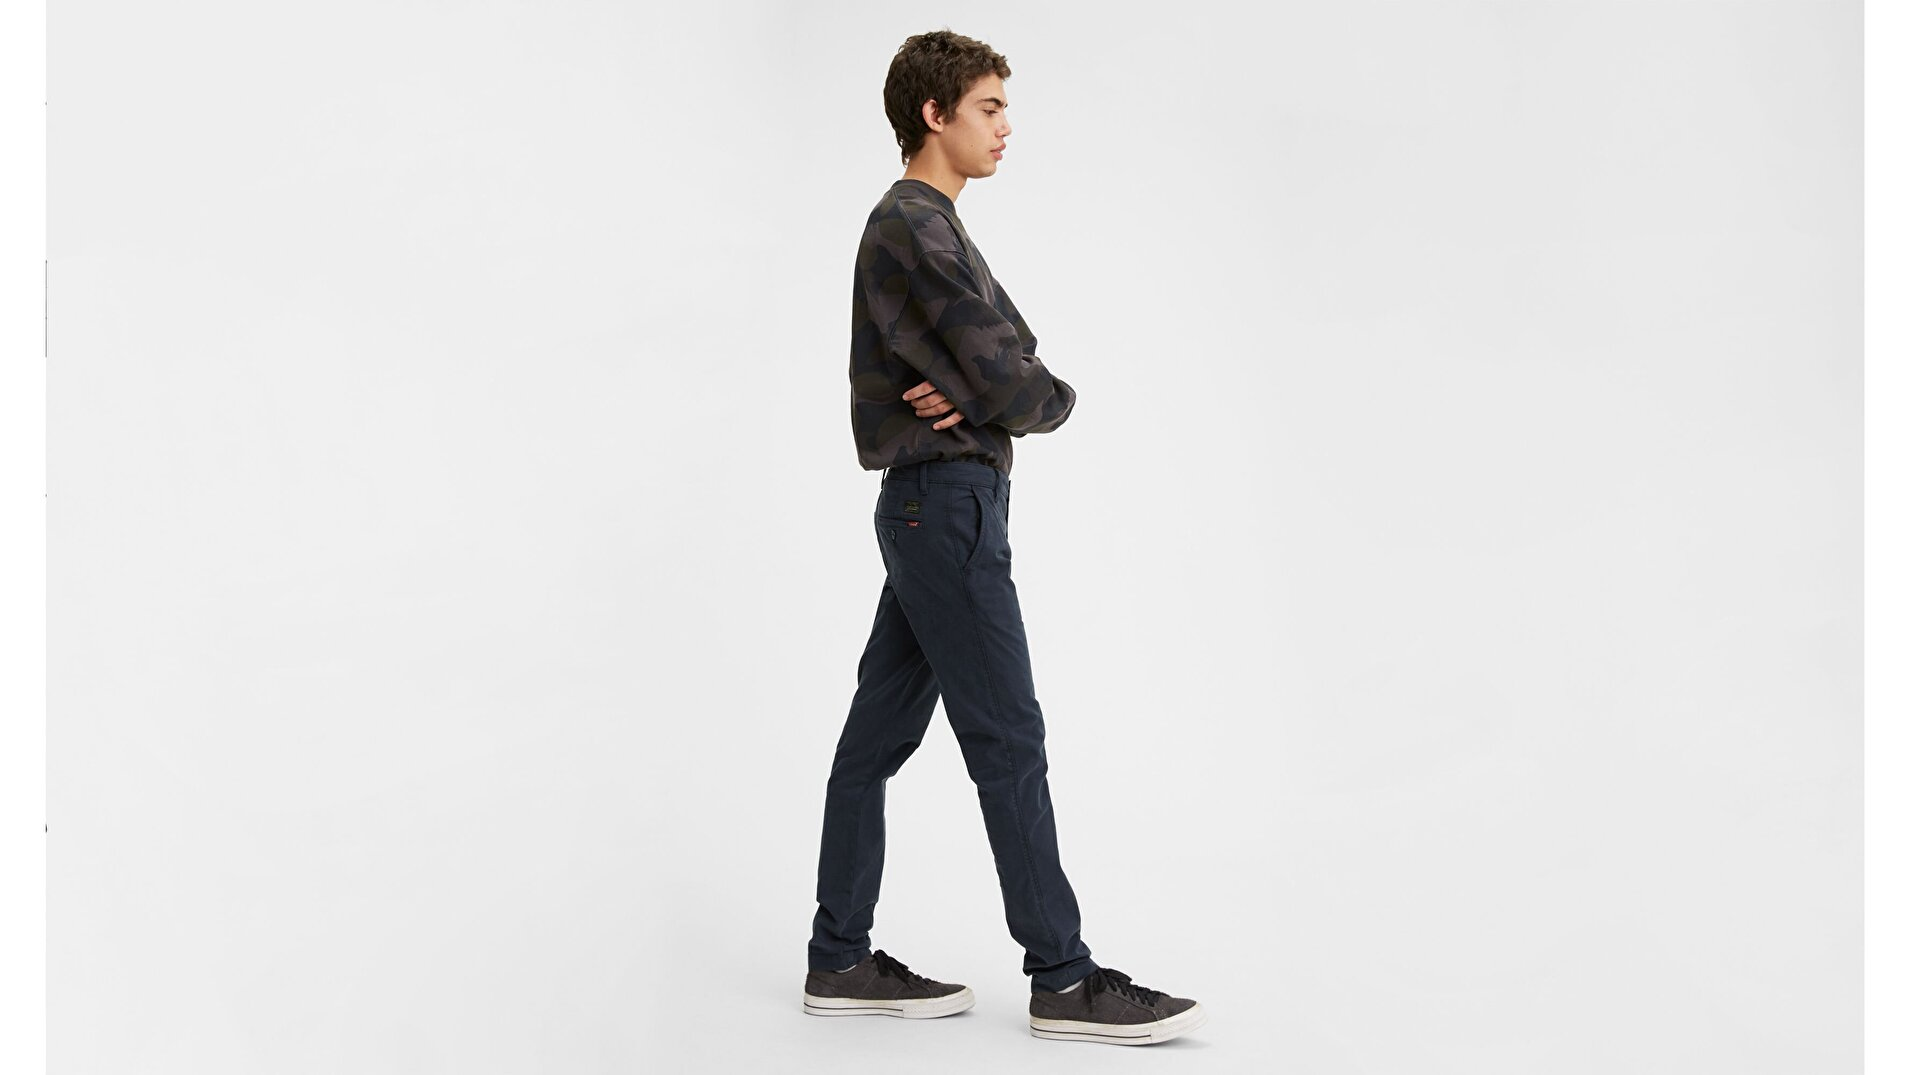 XX Chino Slim Fit Erkek Pantolon-Baltic Shady